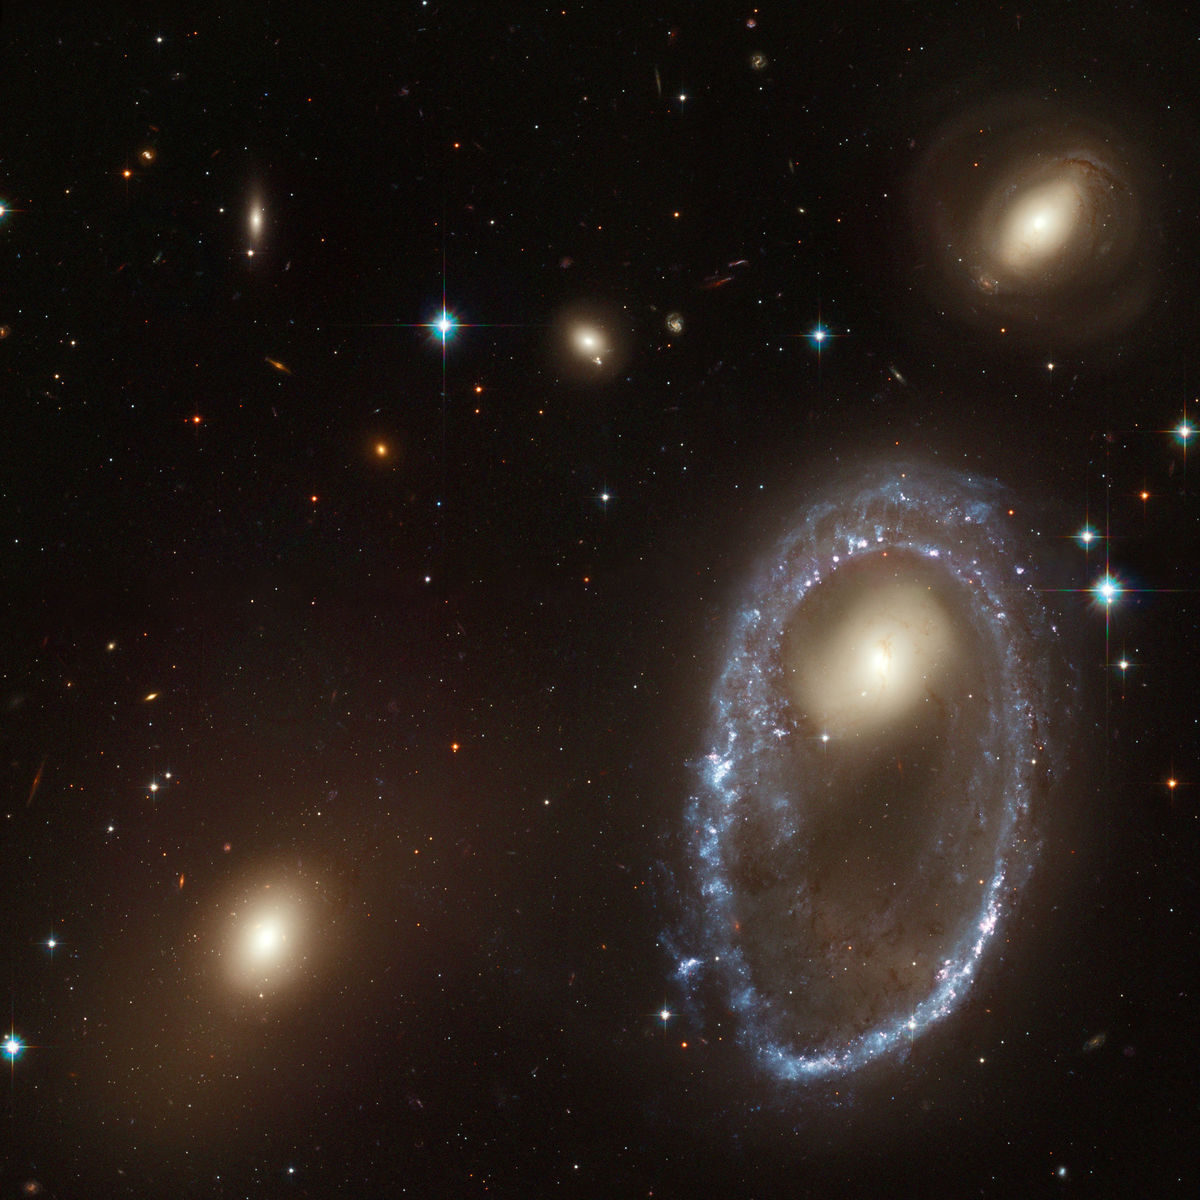 The ring galaxy AM 0644-071, created when a small compact galaxy plowed through the middle of a spiral galaxy at least tens of millions of years ago. Credit: NASA, ESA, and The Hubble Heritage Team (AURA/STScI)